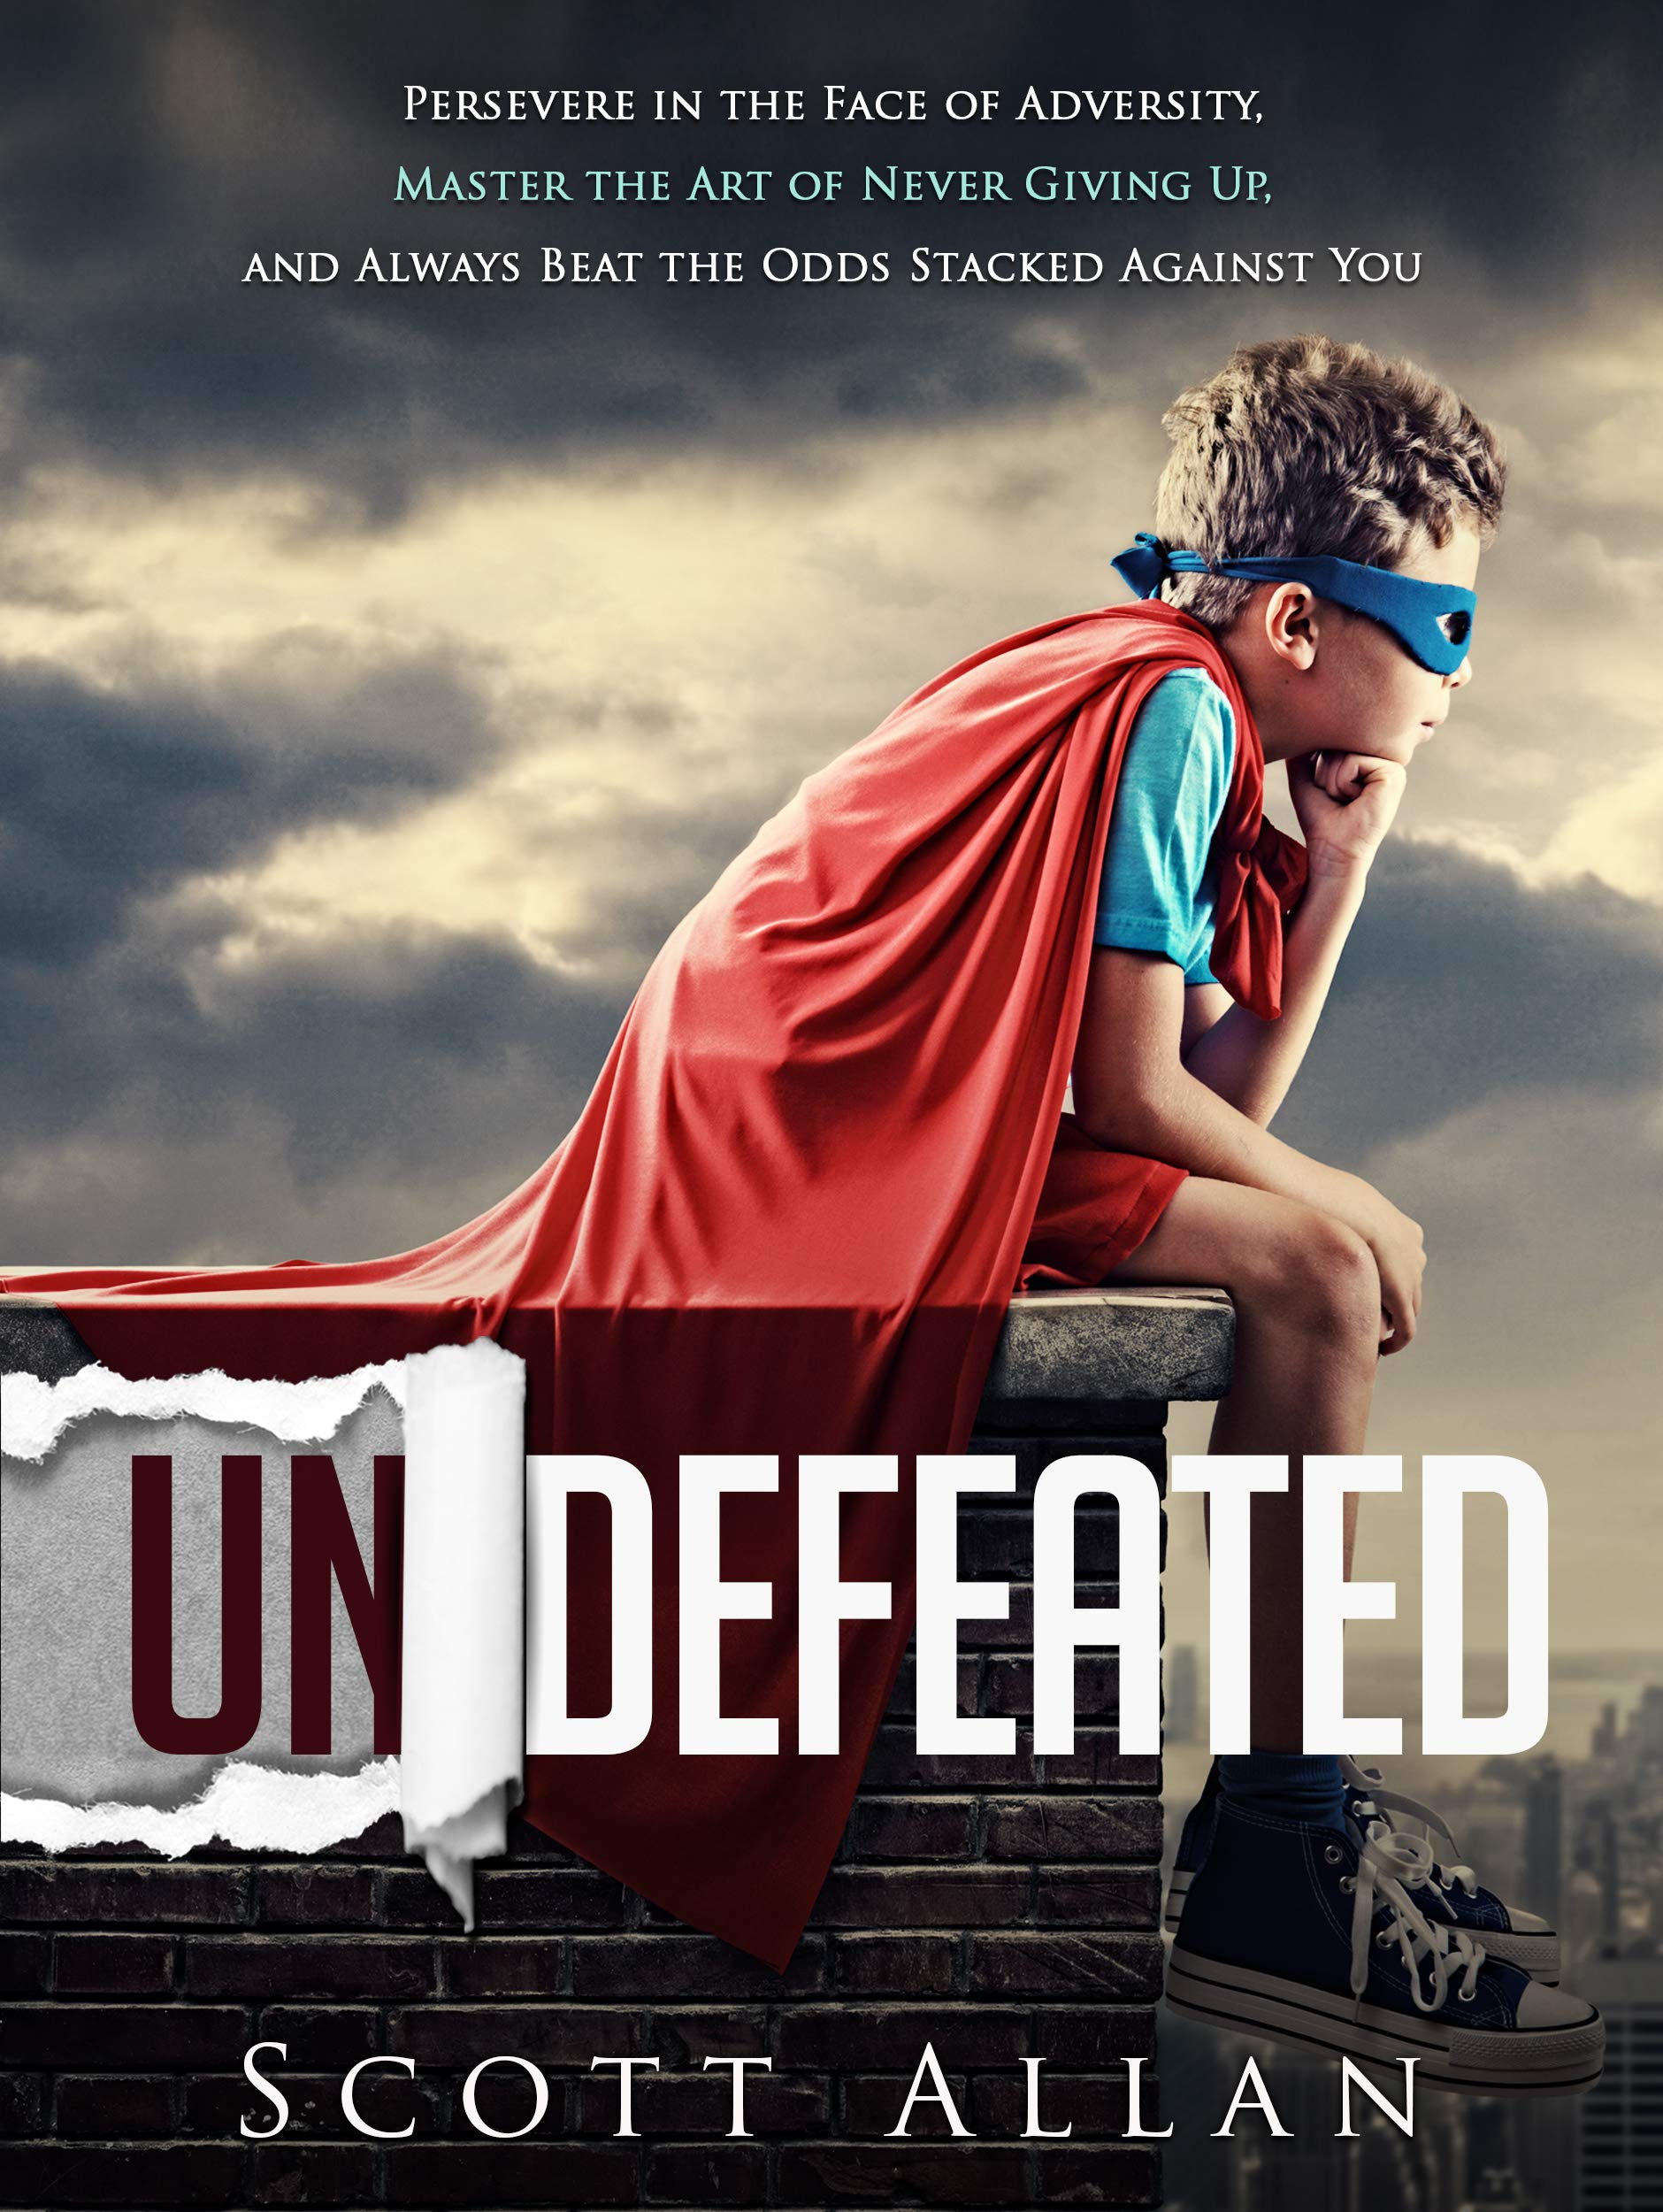 Undefeated: Persevere in the Face of Adversity Master the Art of Never Giving Up and Always Beat the Odds Stacked Against You (Break Your Fear Series Book 3) (English Edition)